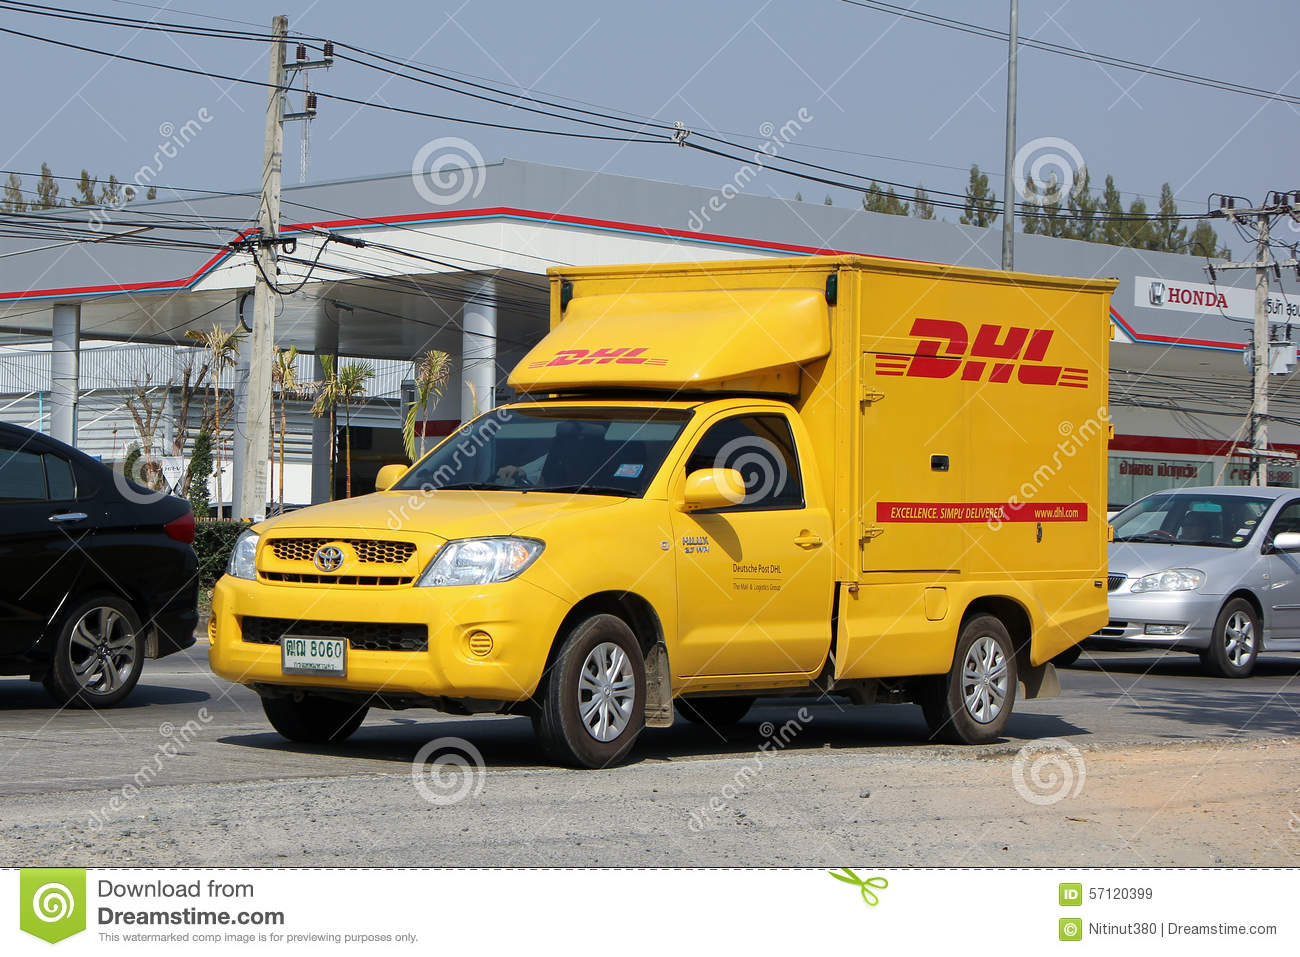 Dhl Pickup Locations >> Dhl Express And Logistics Container Pickup Truck Editorial Stock